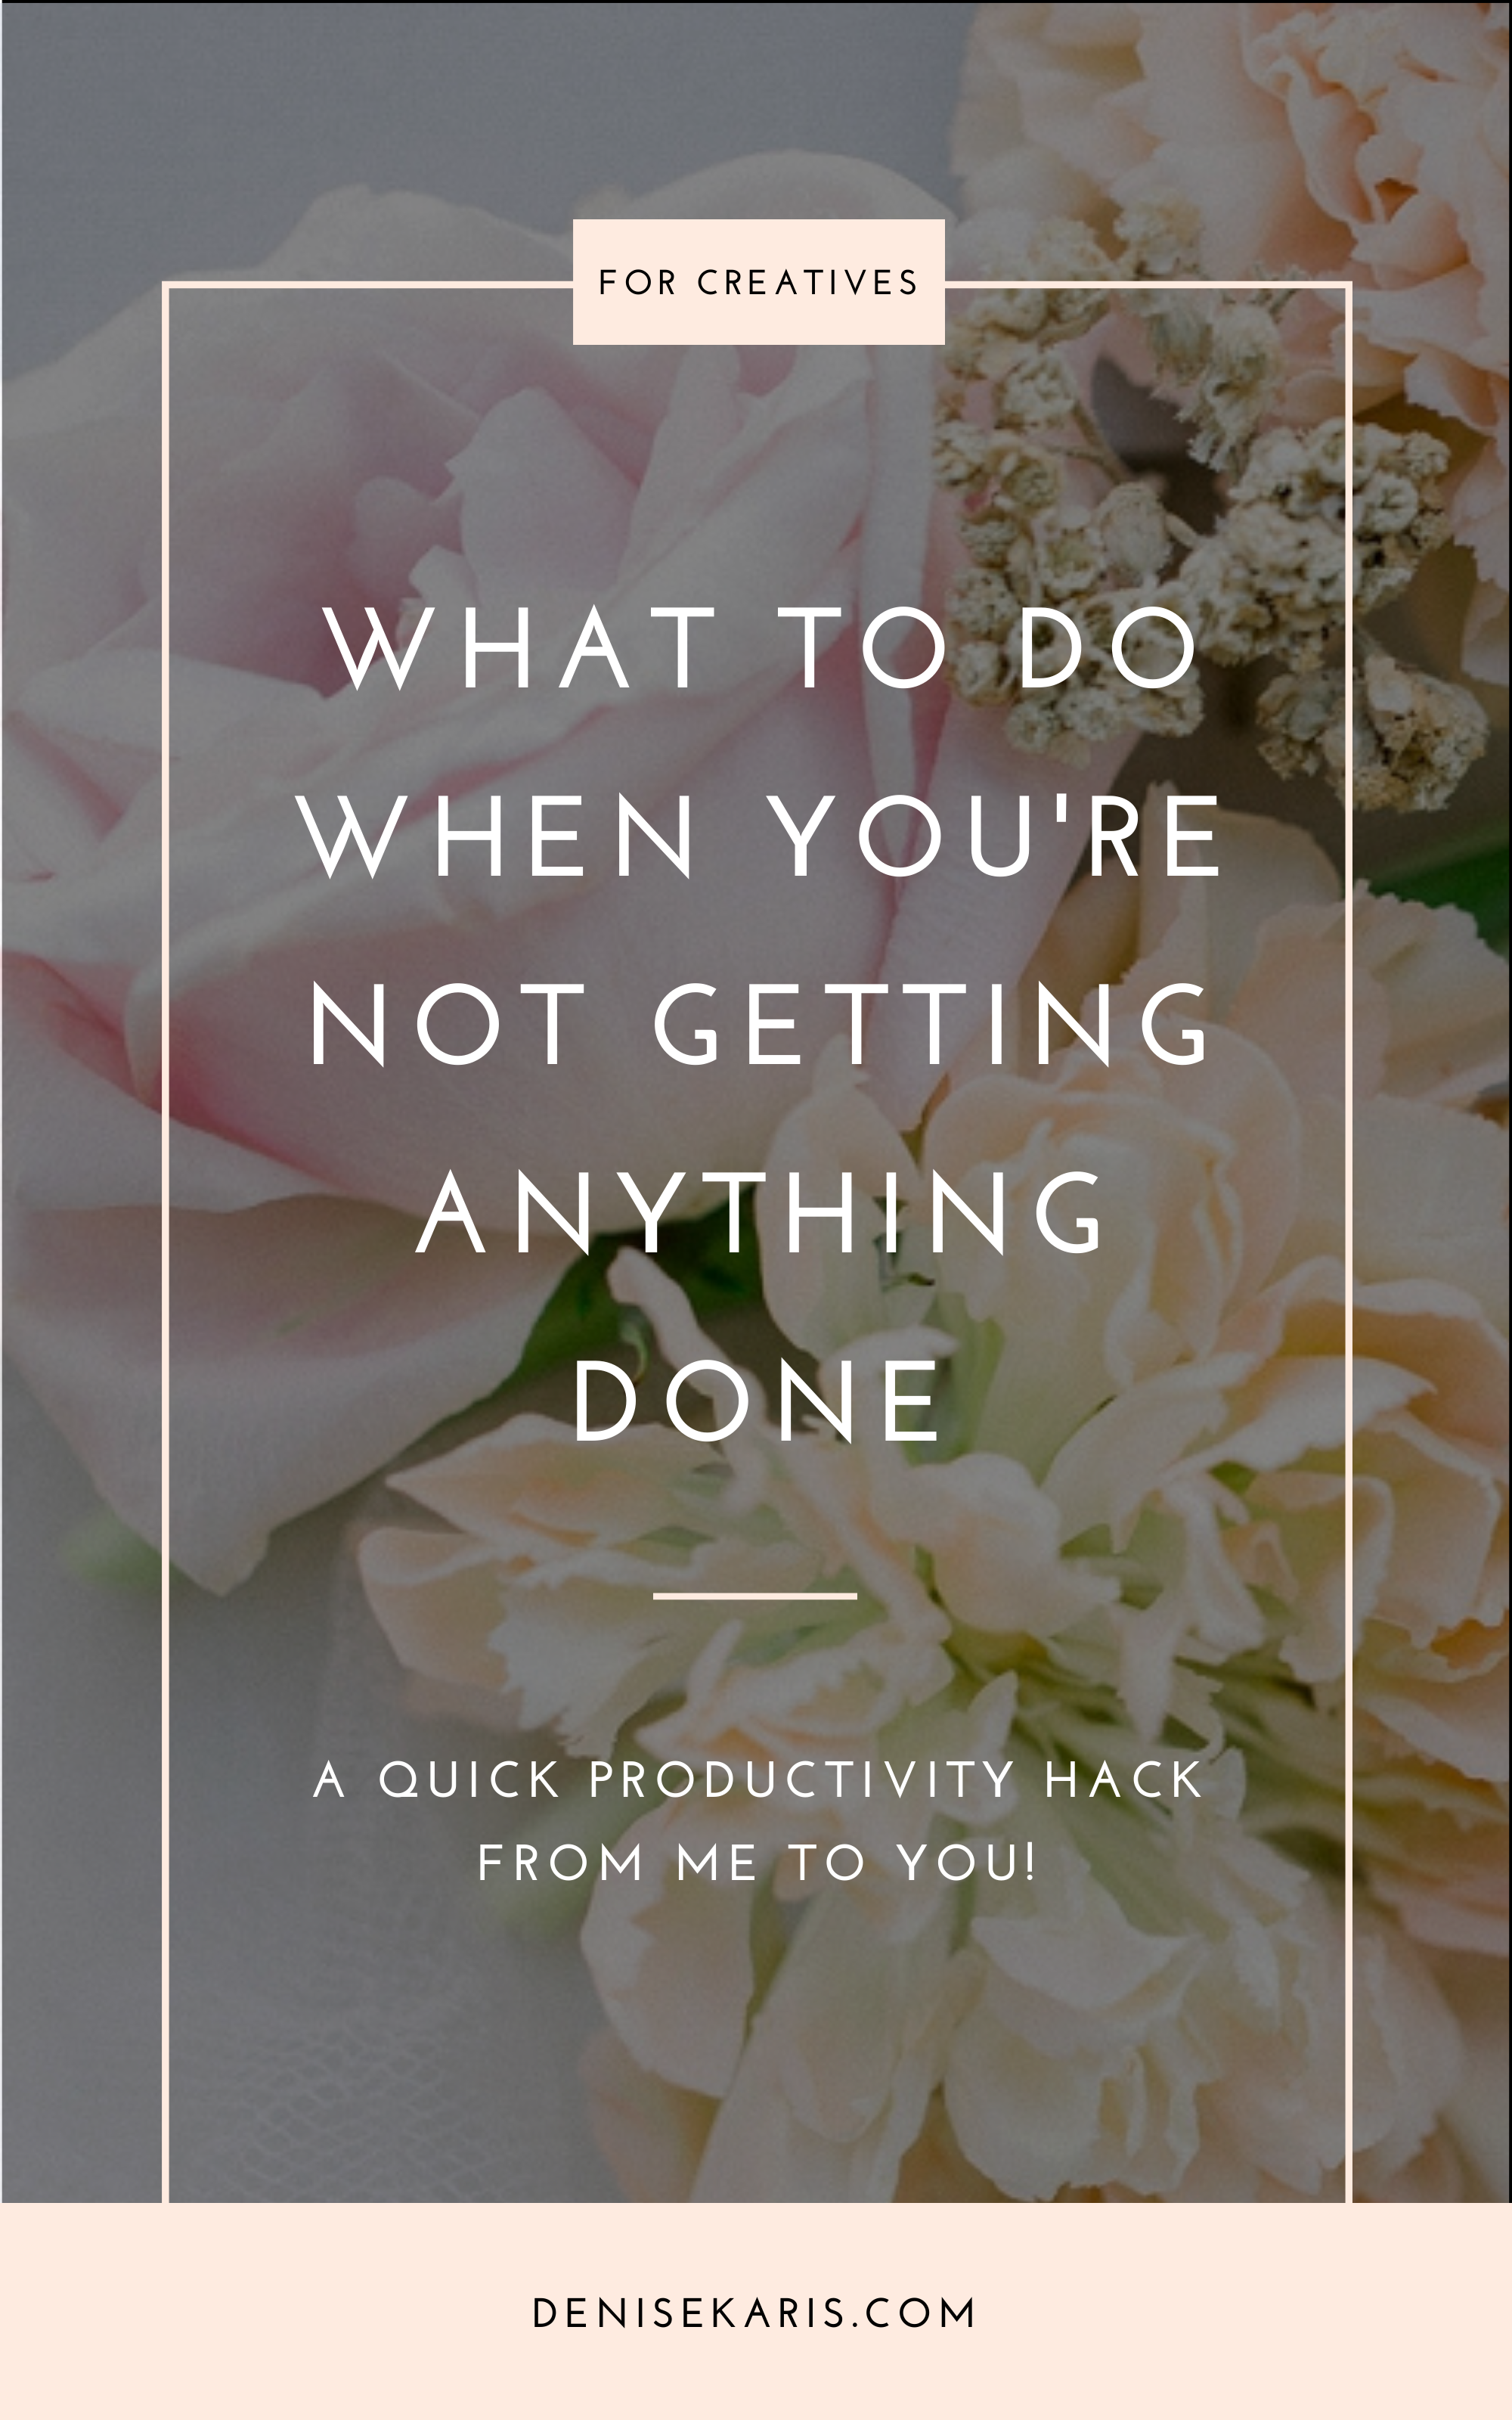 What To Do When You're Not Getting Anything Done